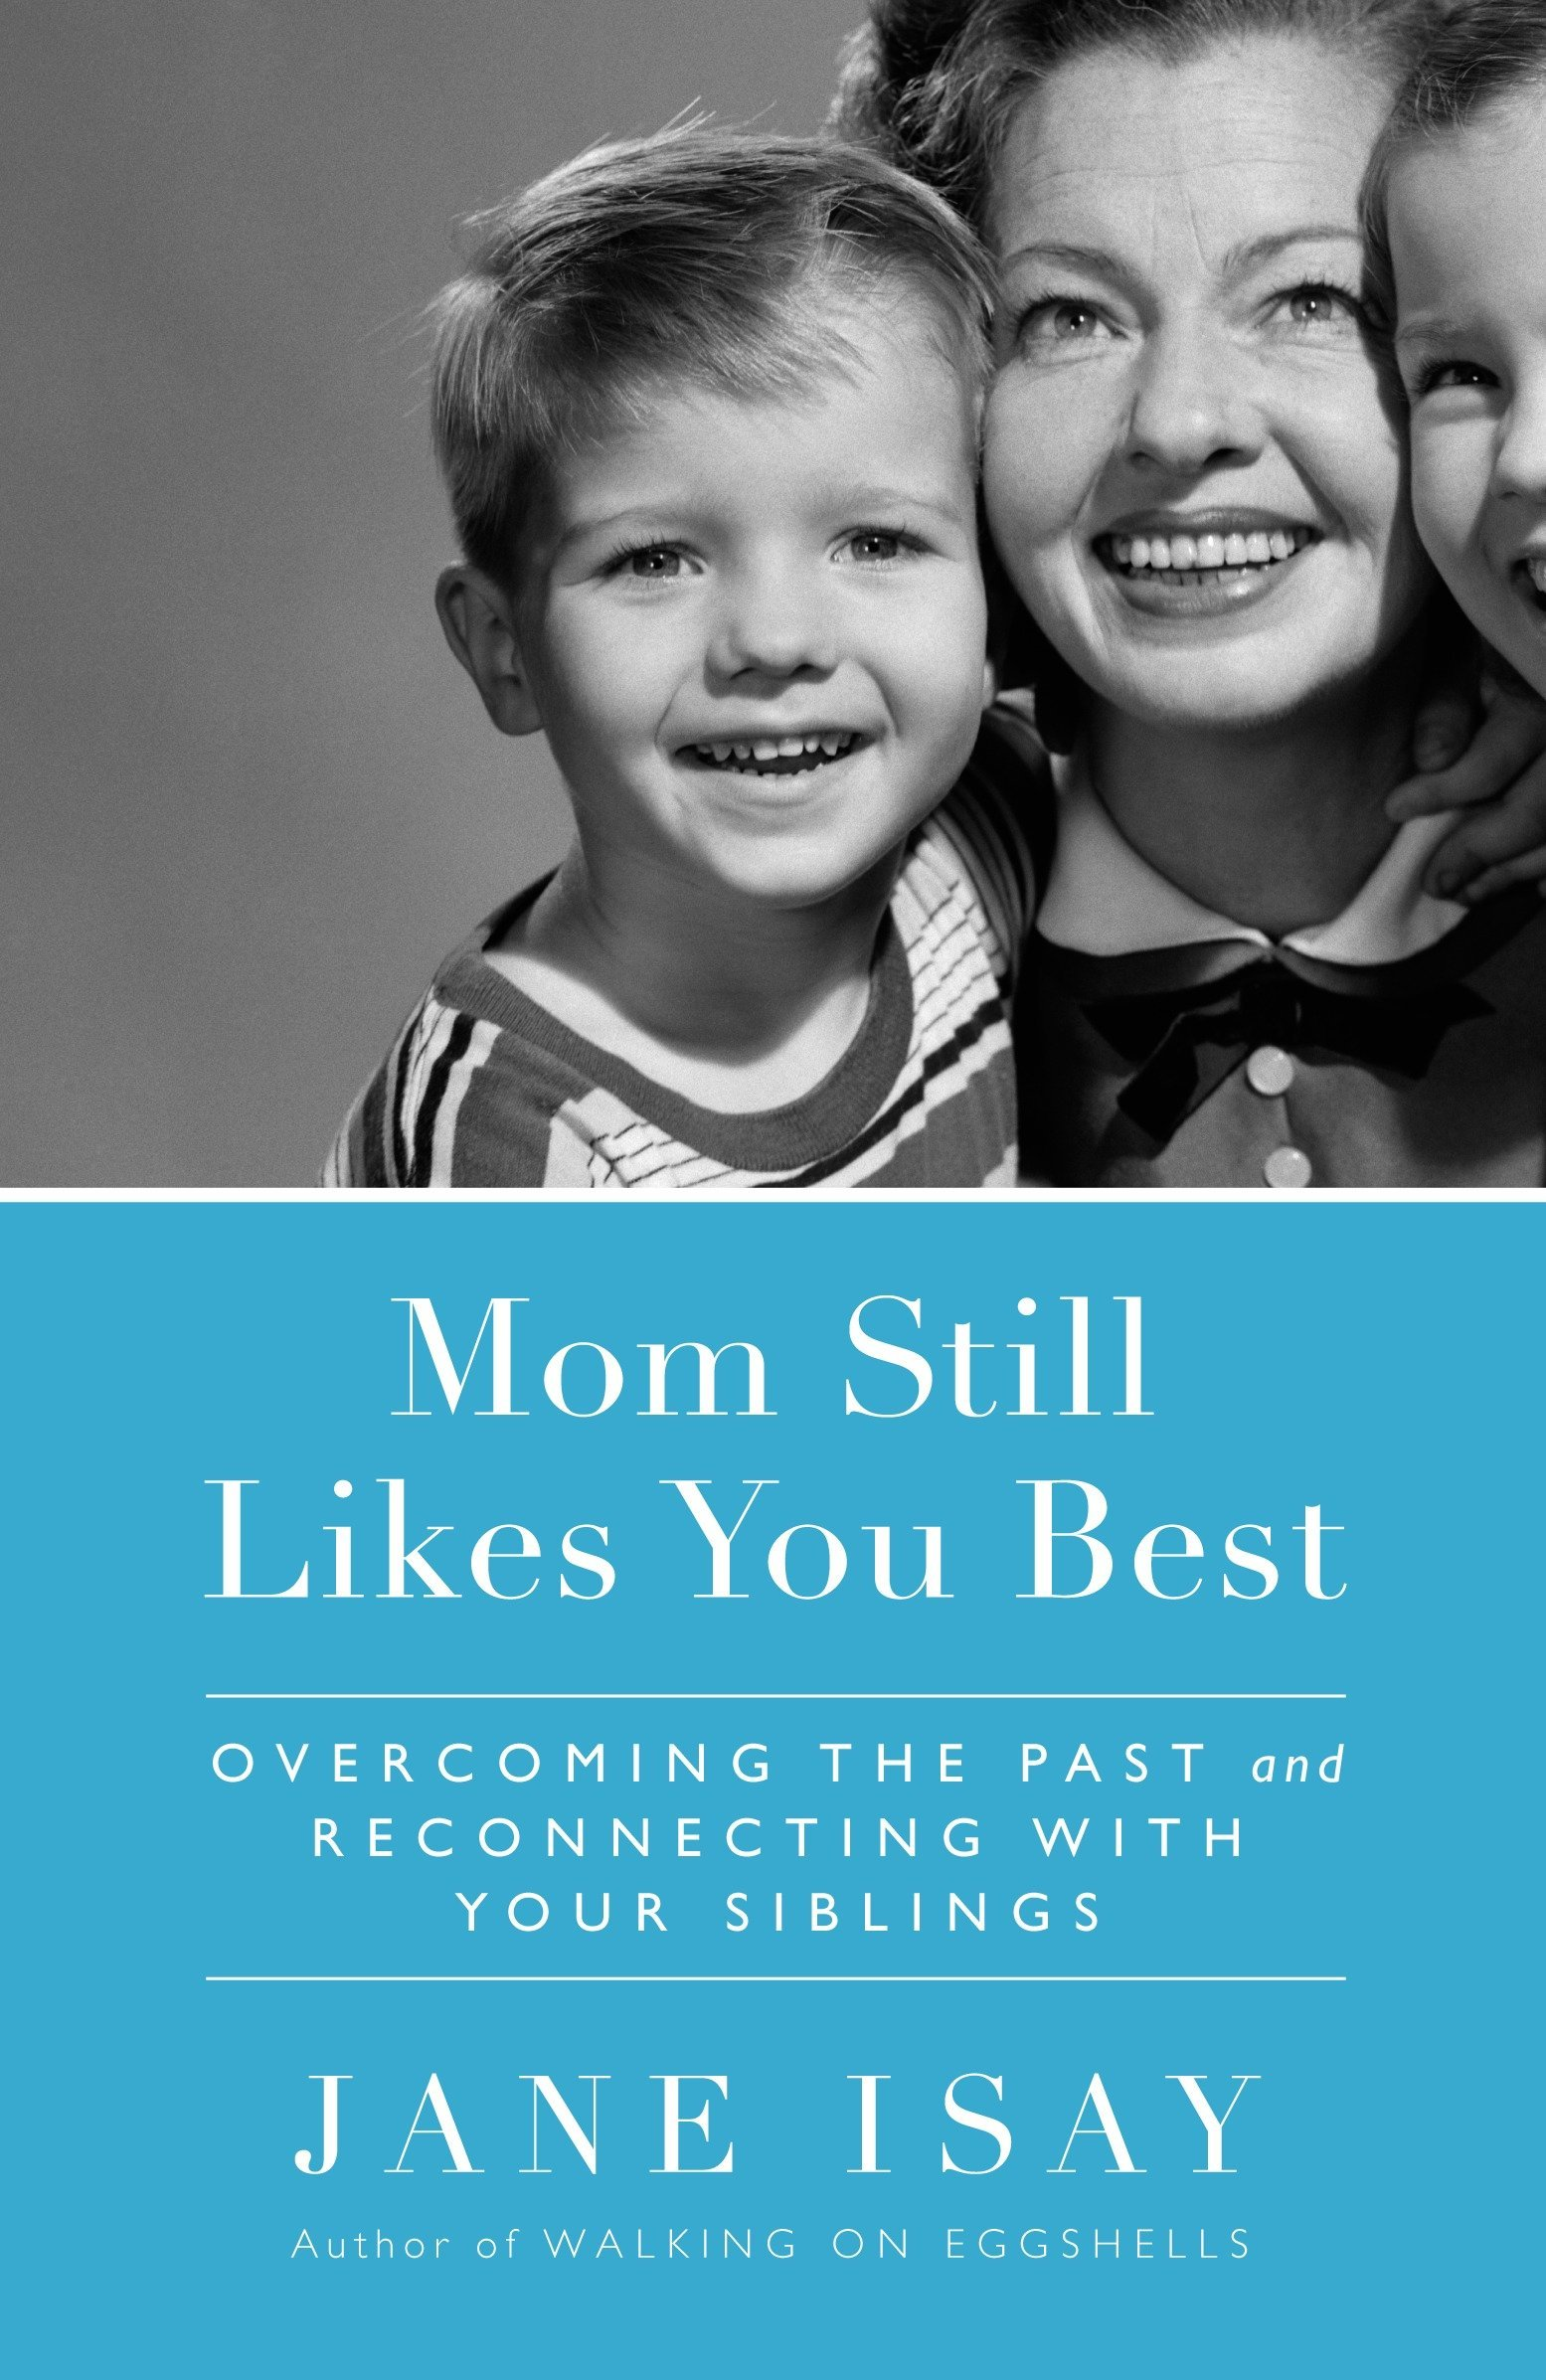 Mom Still Likes You Best: Overcoming the Past and Reconnecting With Your  Siblings: Jane Isay: 9780767928649: Amazon.com: Books